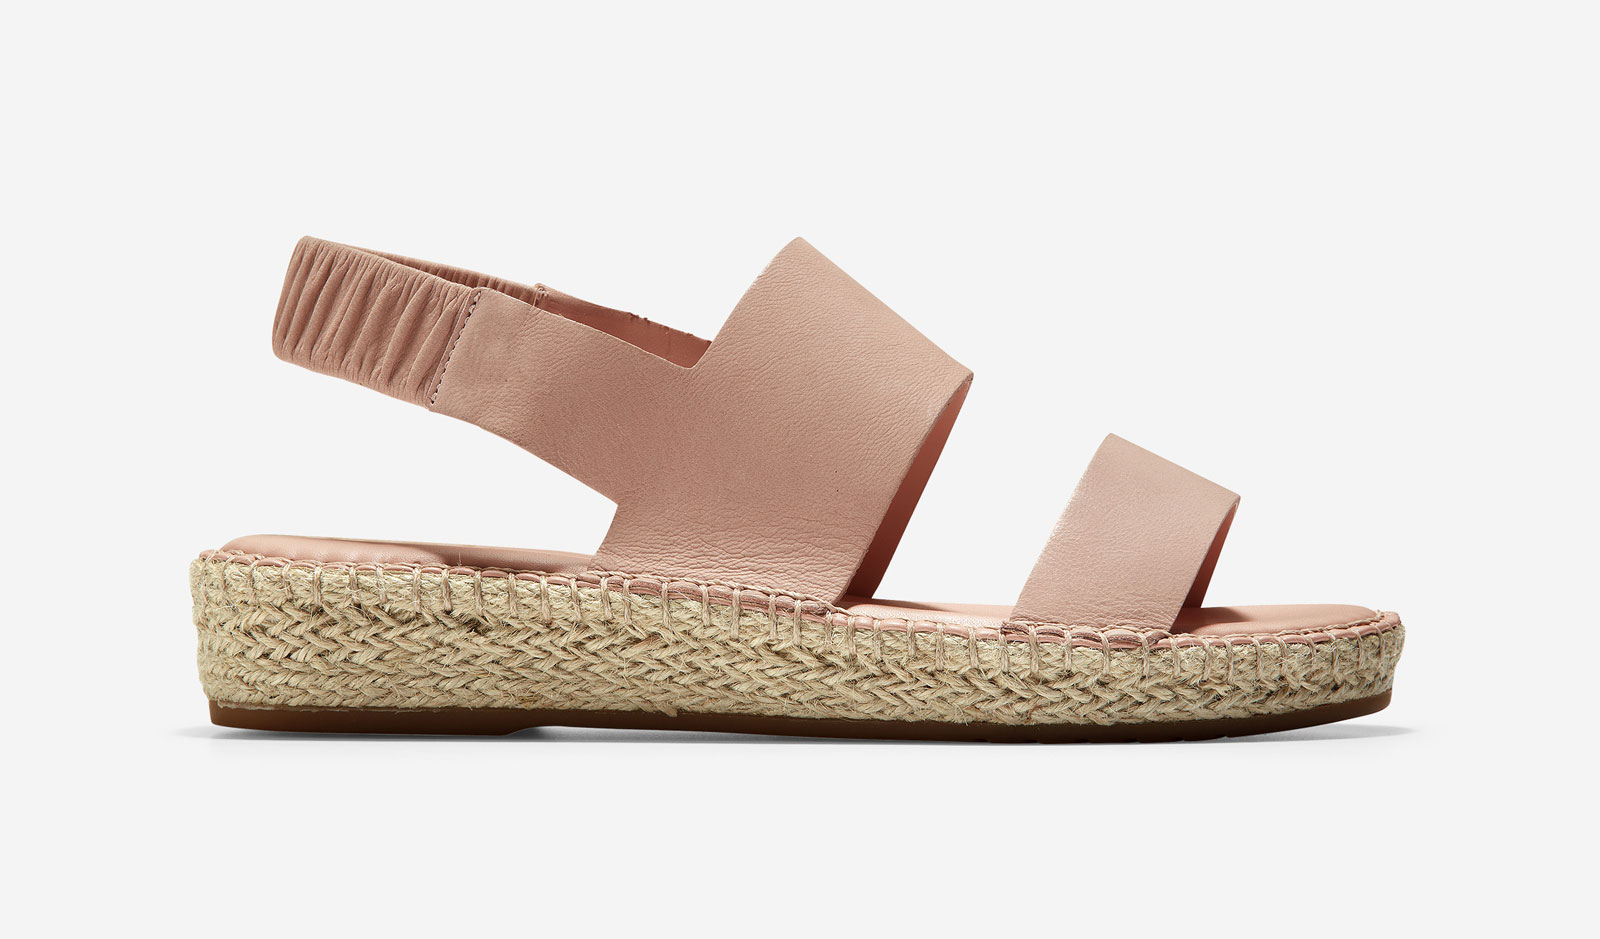 Rose/Nude Espadrille Sandals